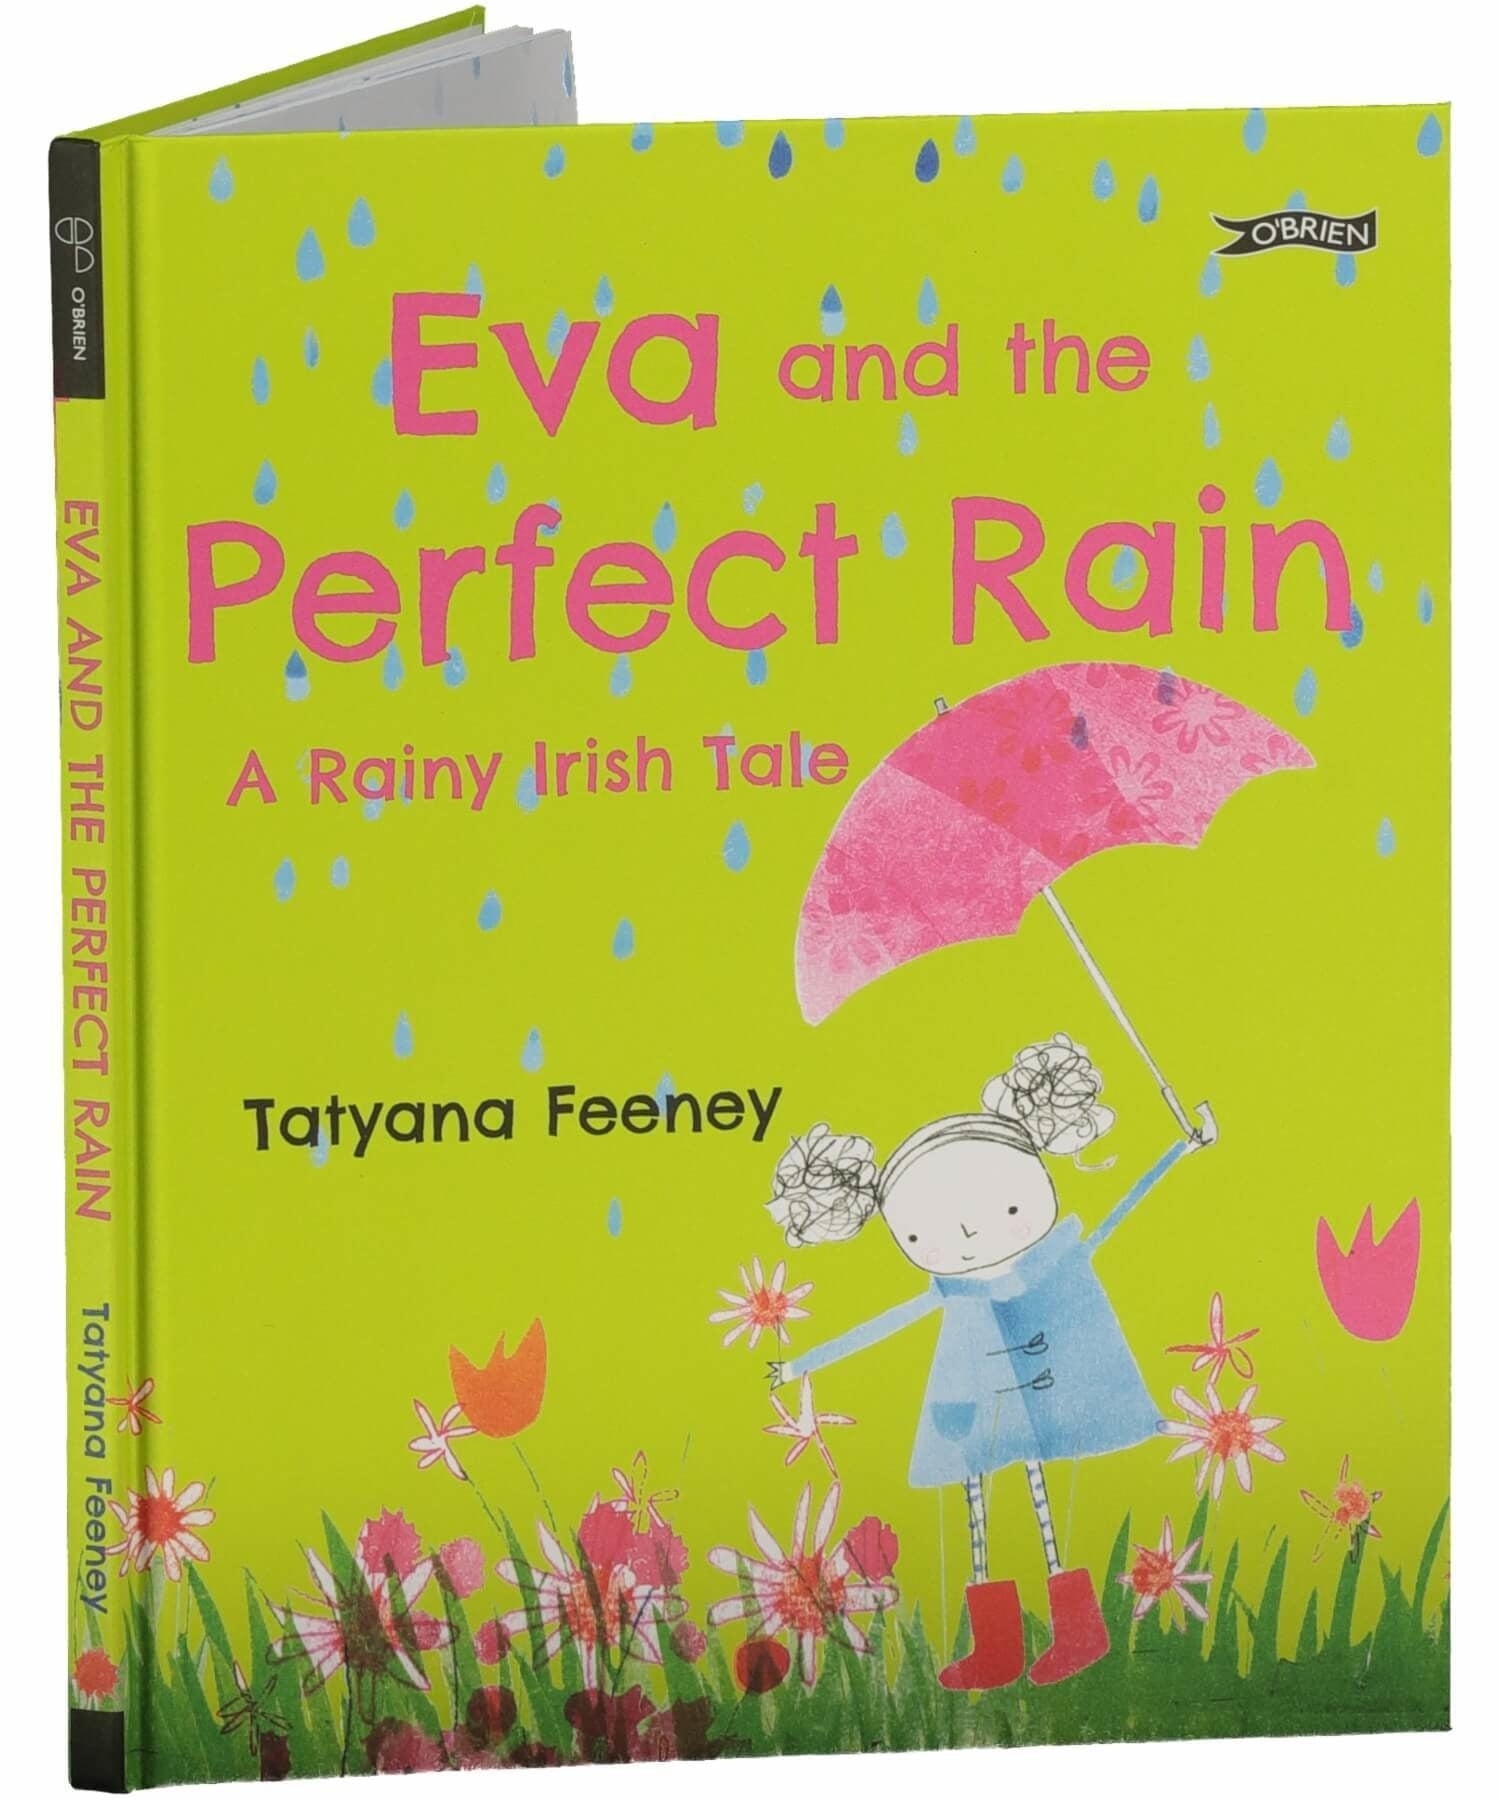 Eva & The Perfect Rain - [The O'Brien Press] - Books & Stationery - Irish Gifts